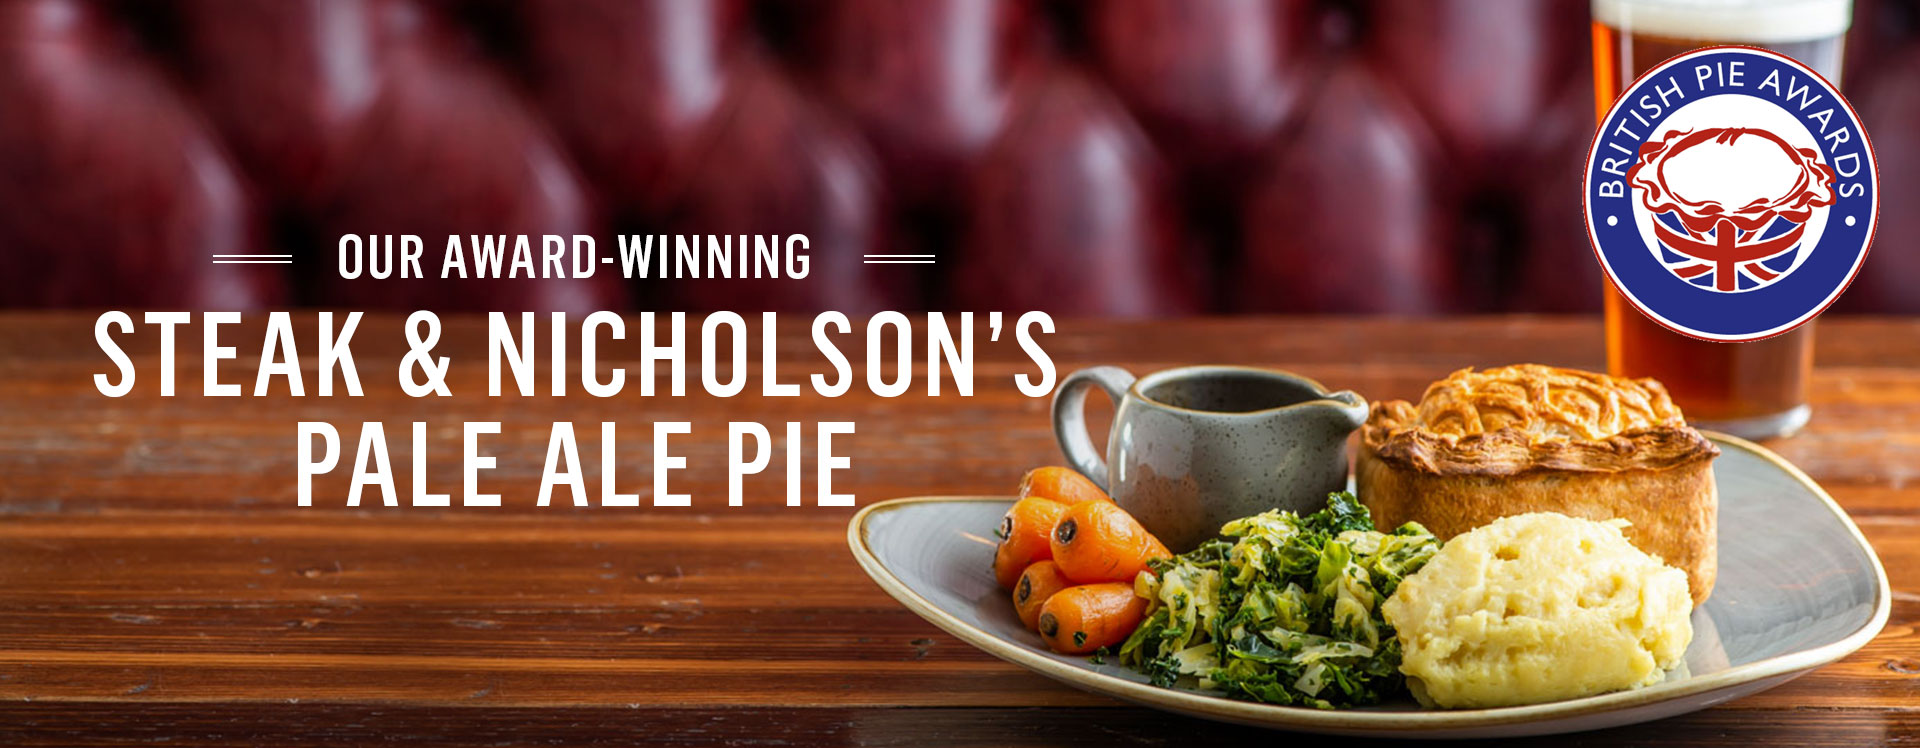 Award Winning Pies at The Conan Doyle